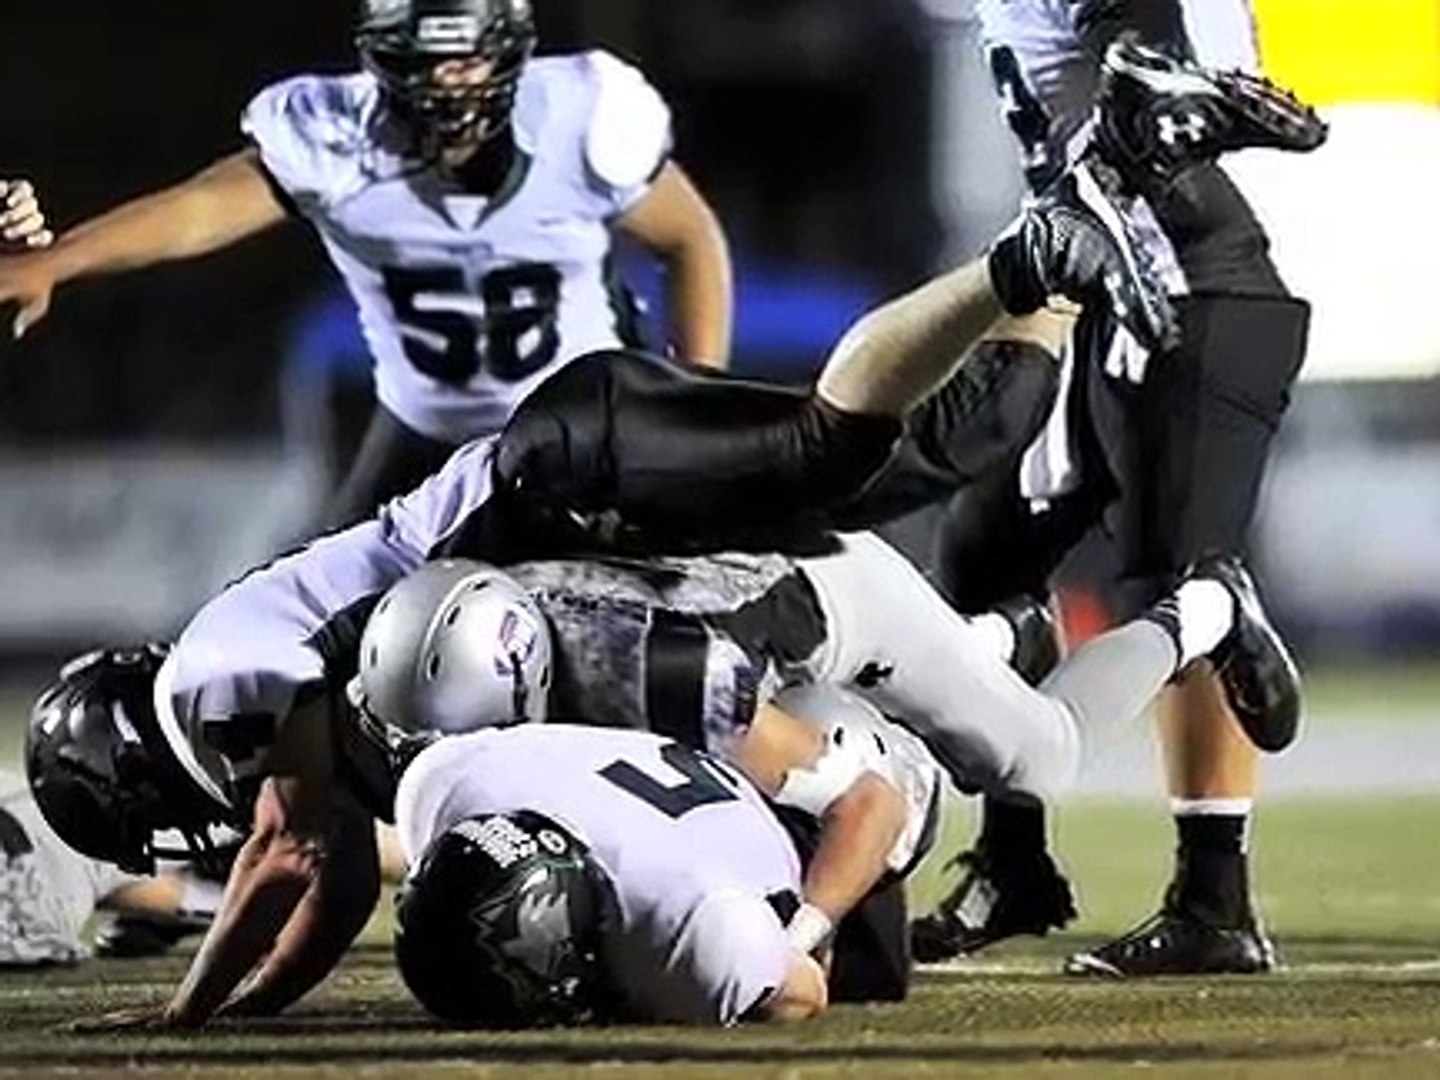 Concussions place high school football under microscope